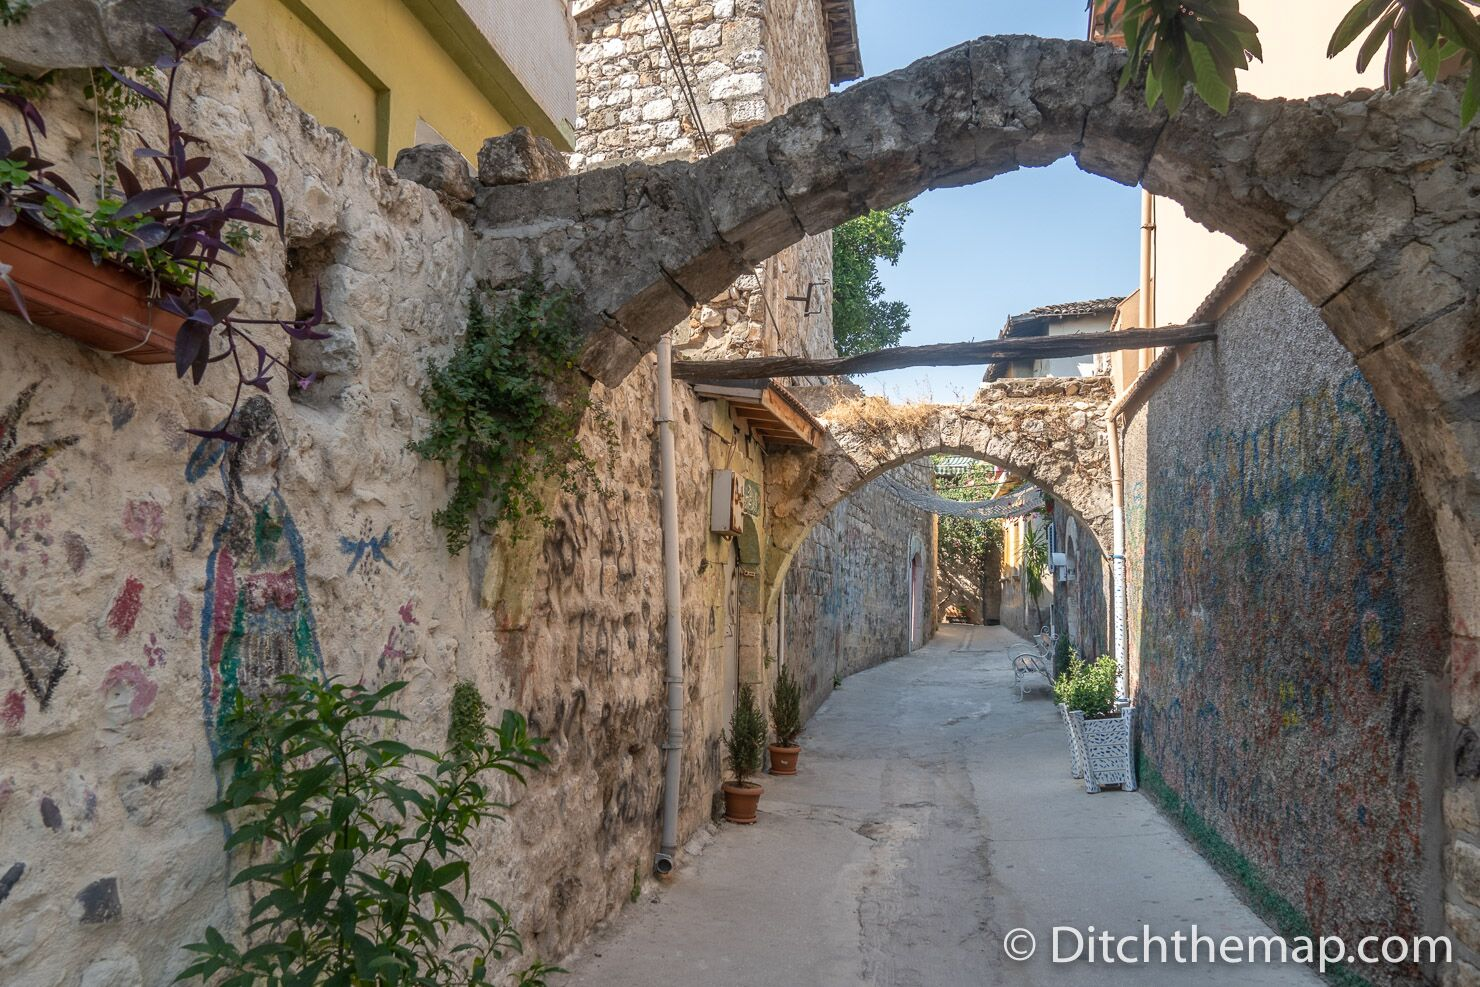 Stone arches in the alley ways of Old Town Antakya